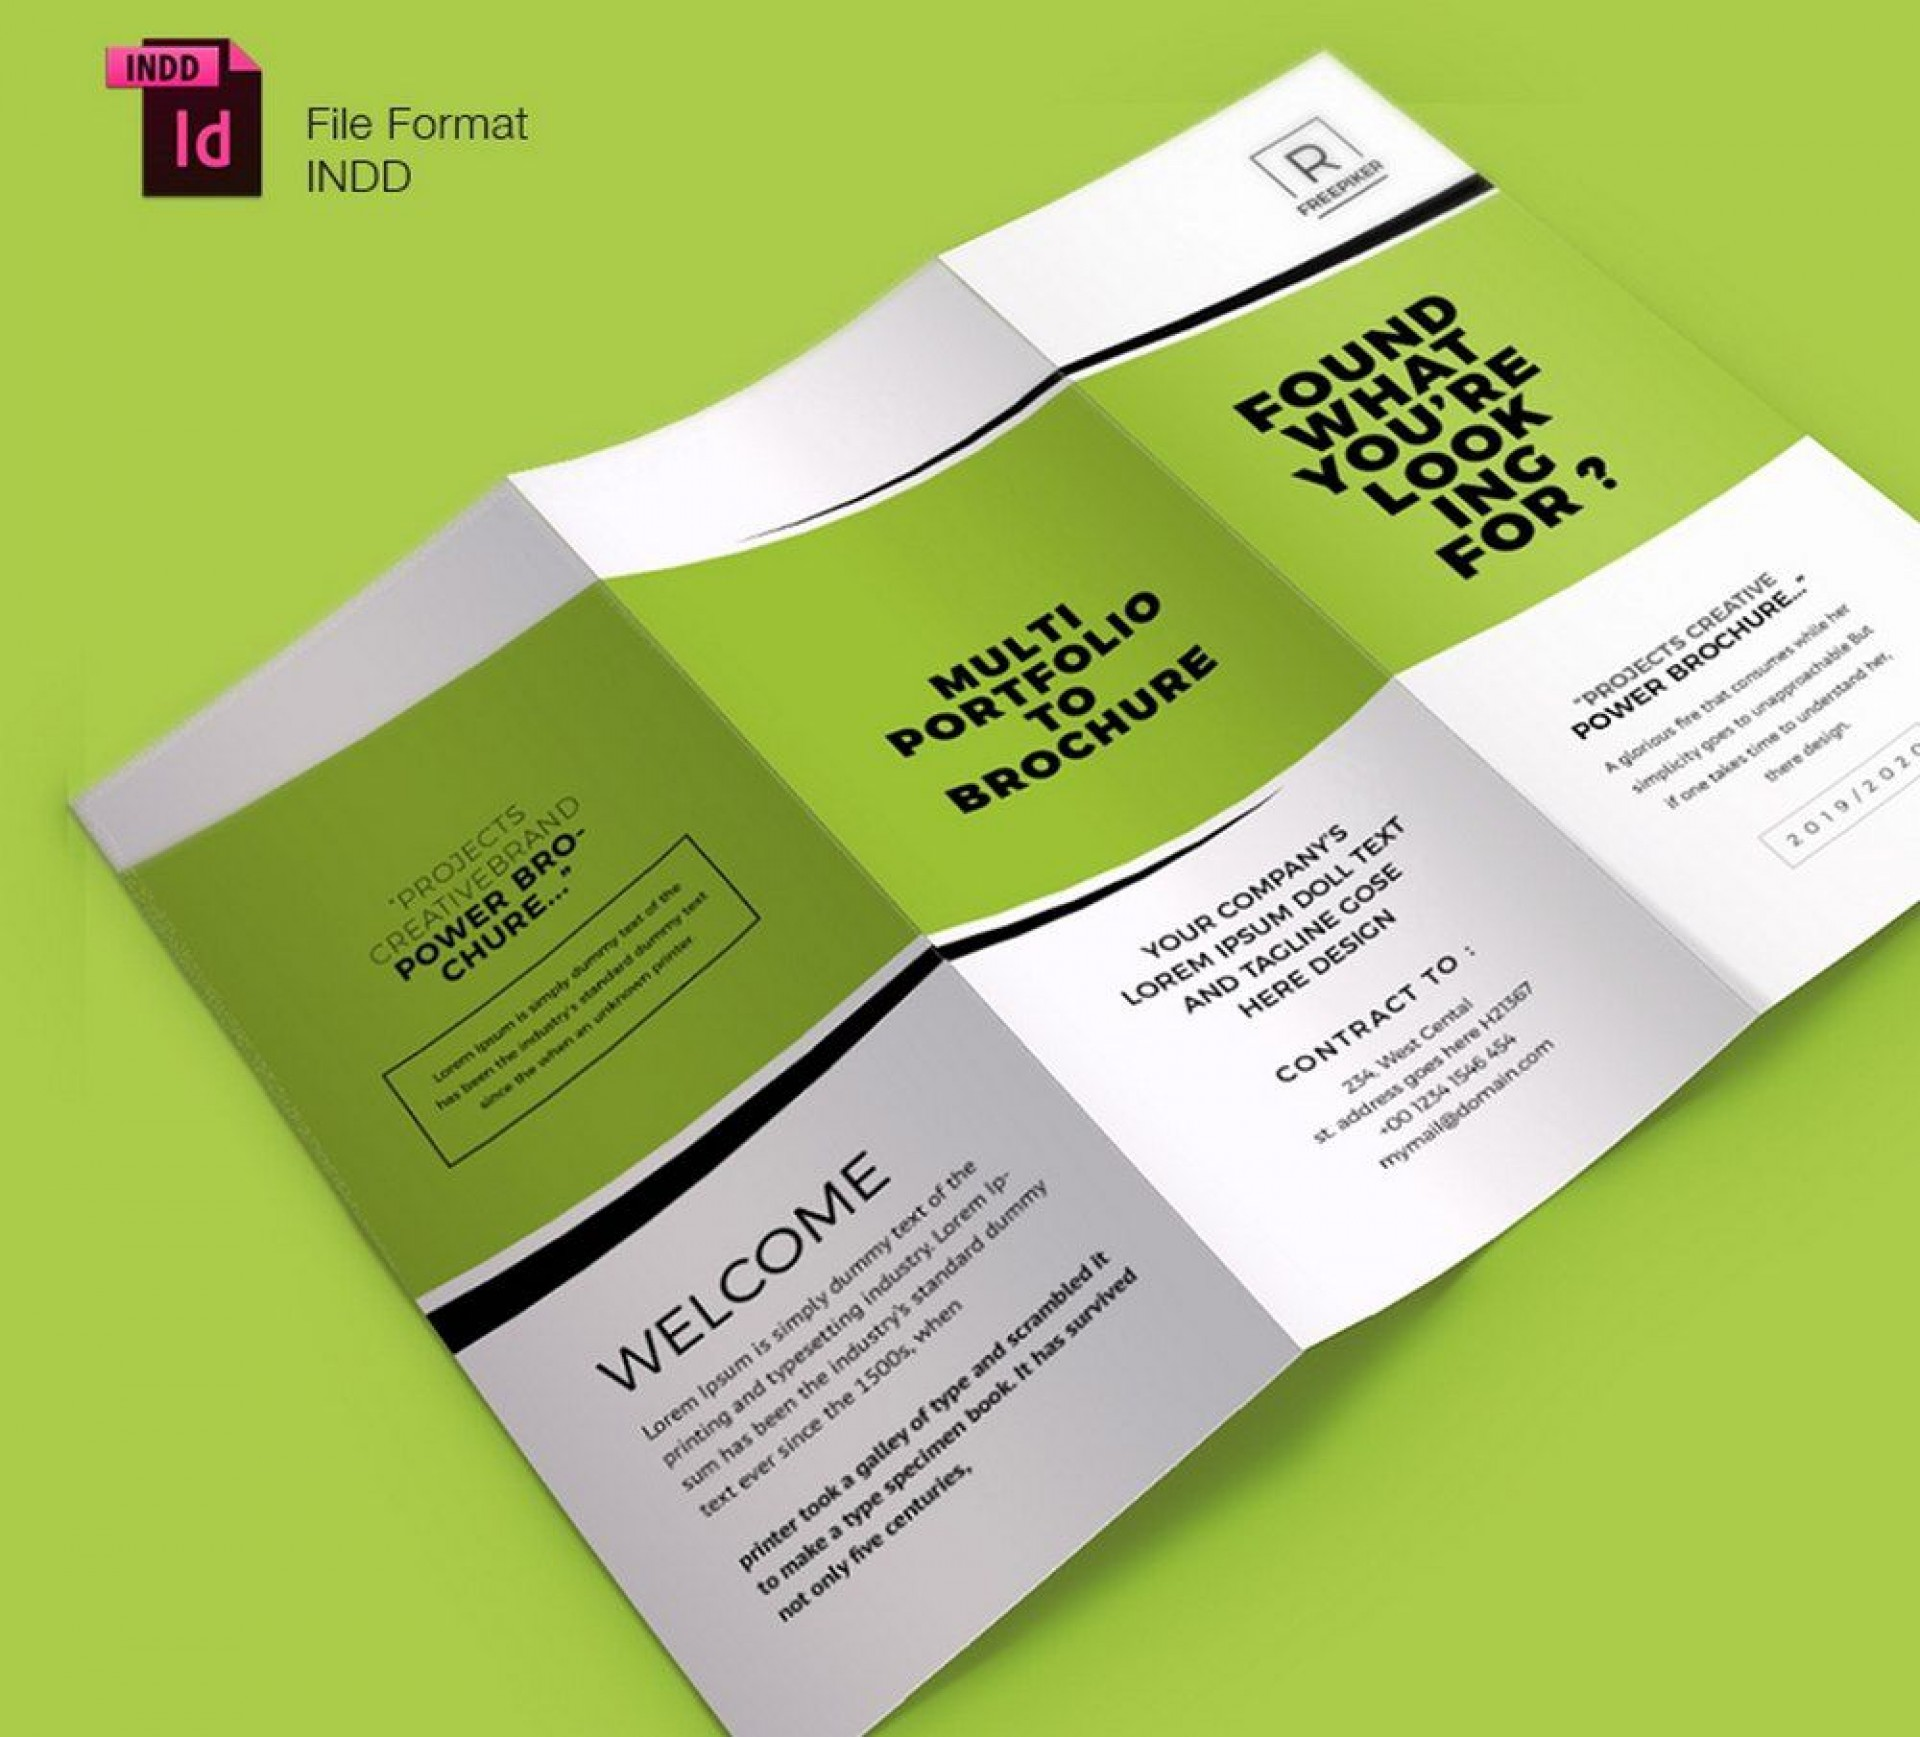 006 Fascinating 3 Fold Brochure Template Free Concept  Word Download1920